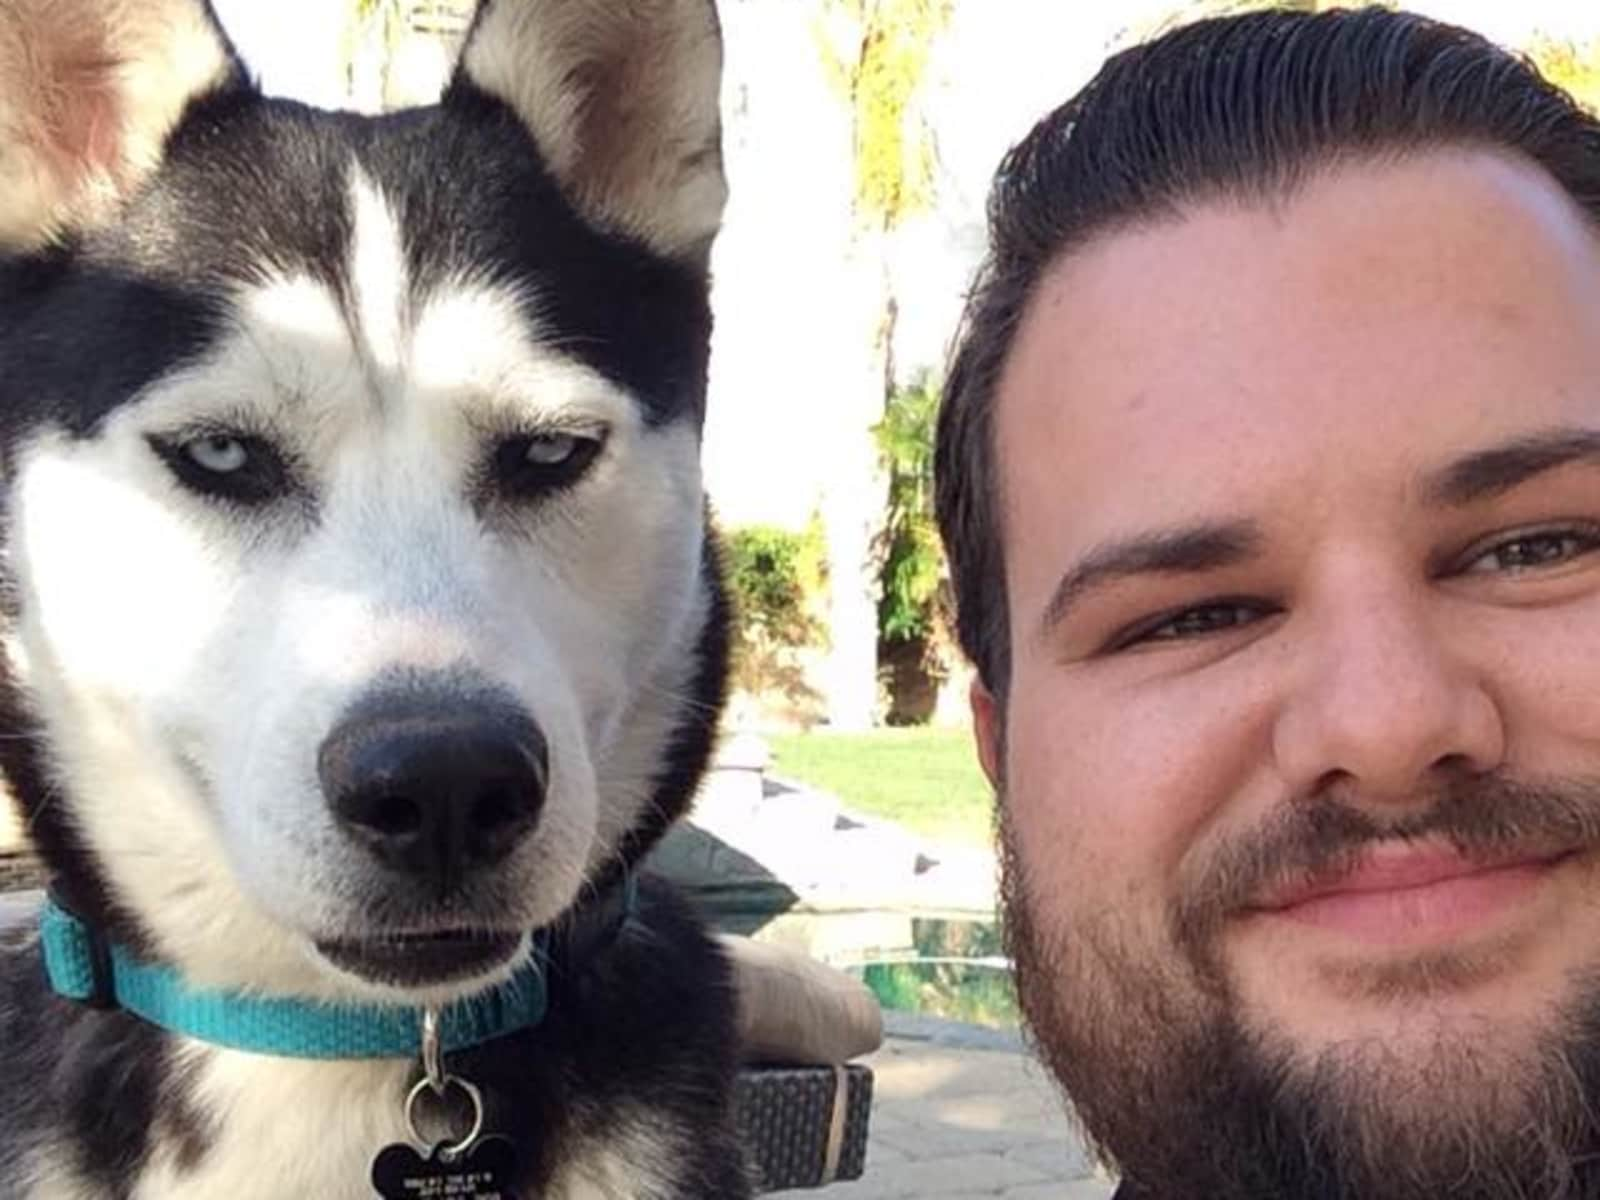 Ryan from Simi Valley, California, United States